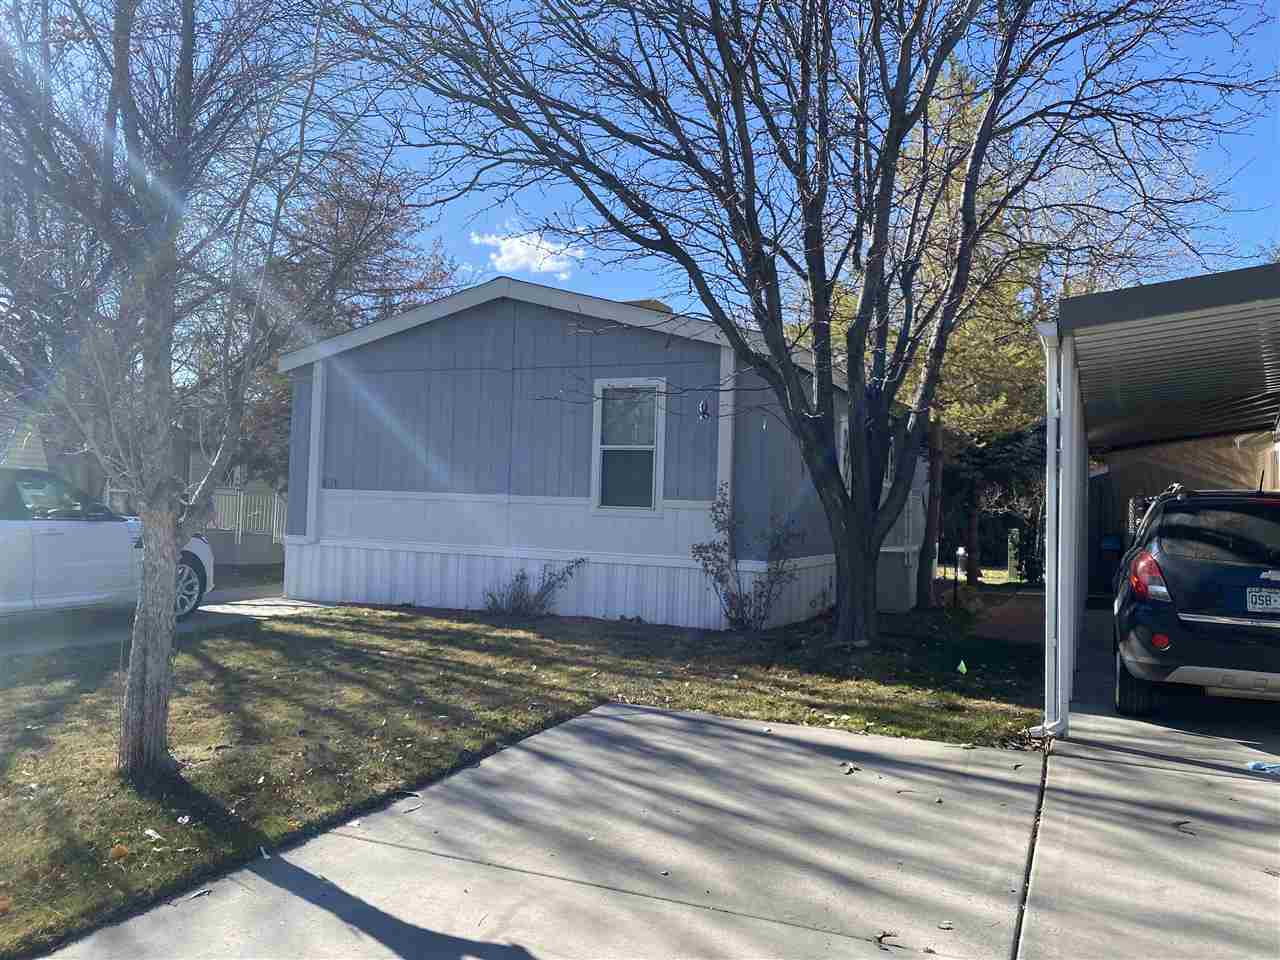 435 32 Road #251 Property Photo - Clifton, CO real estate listing